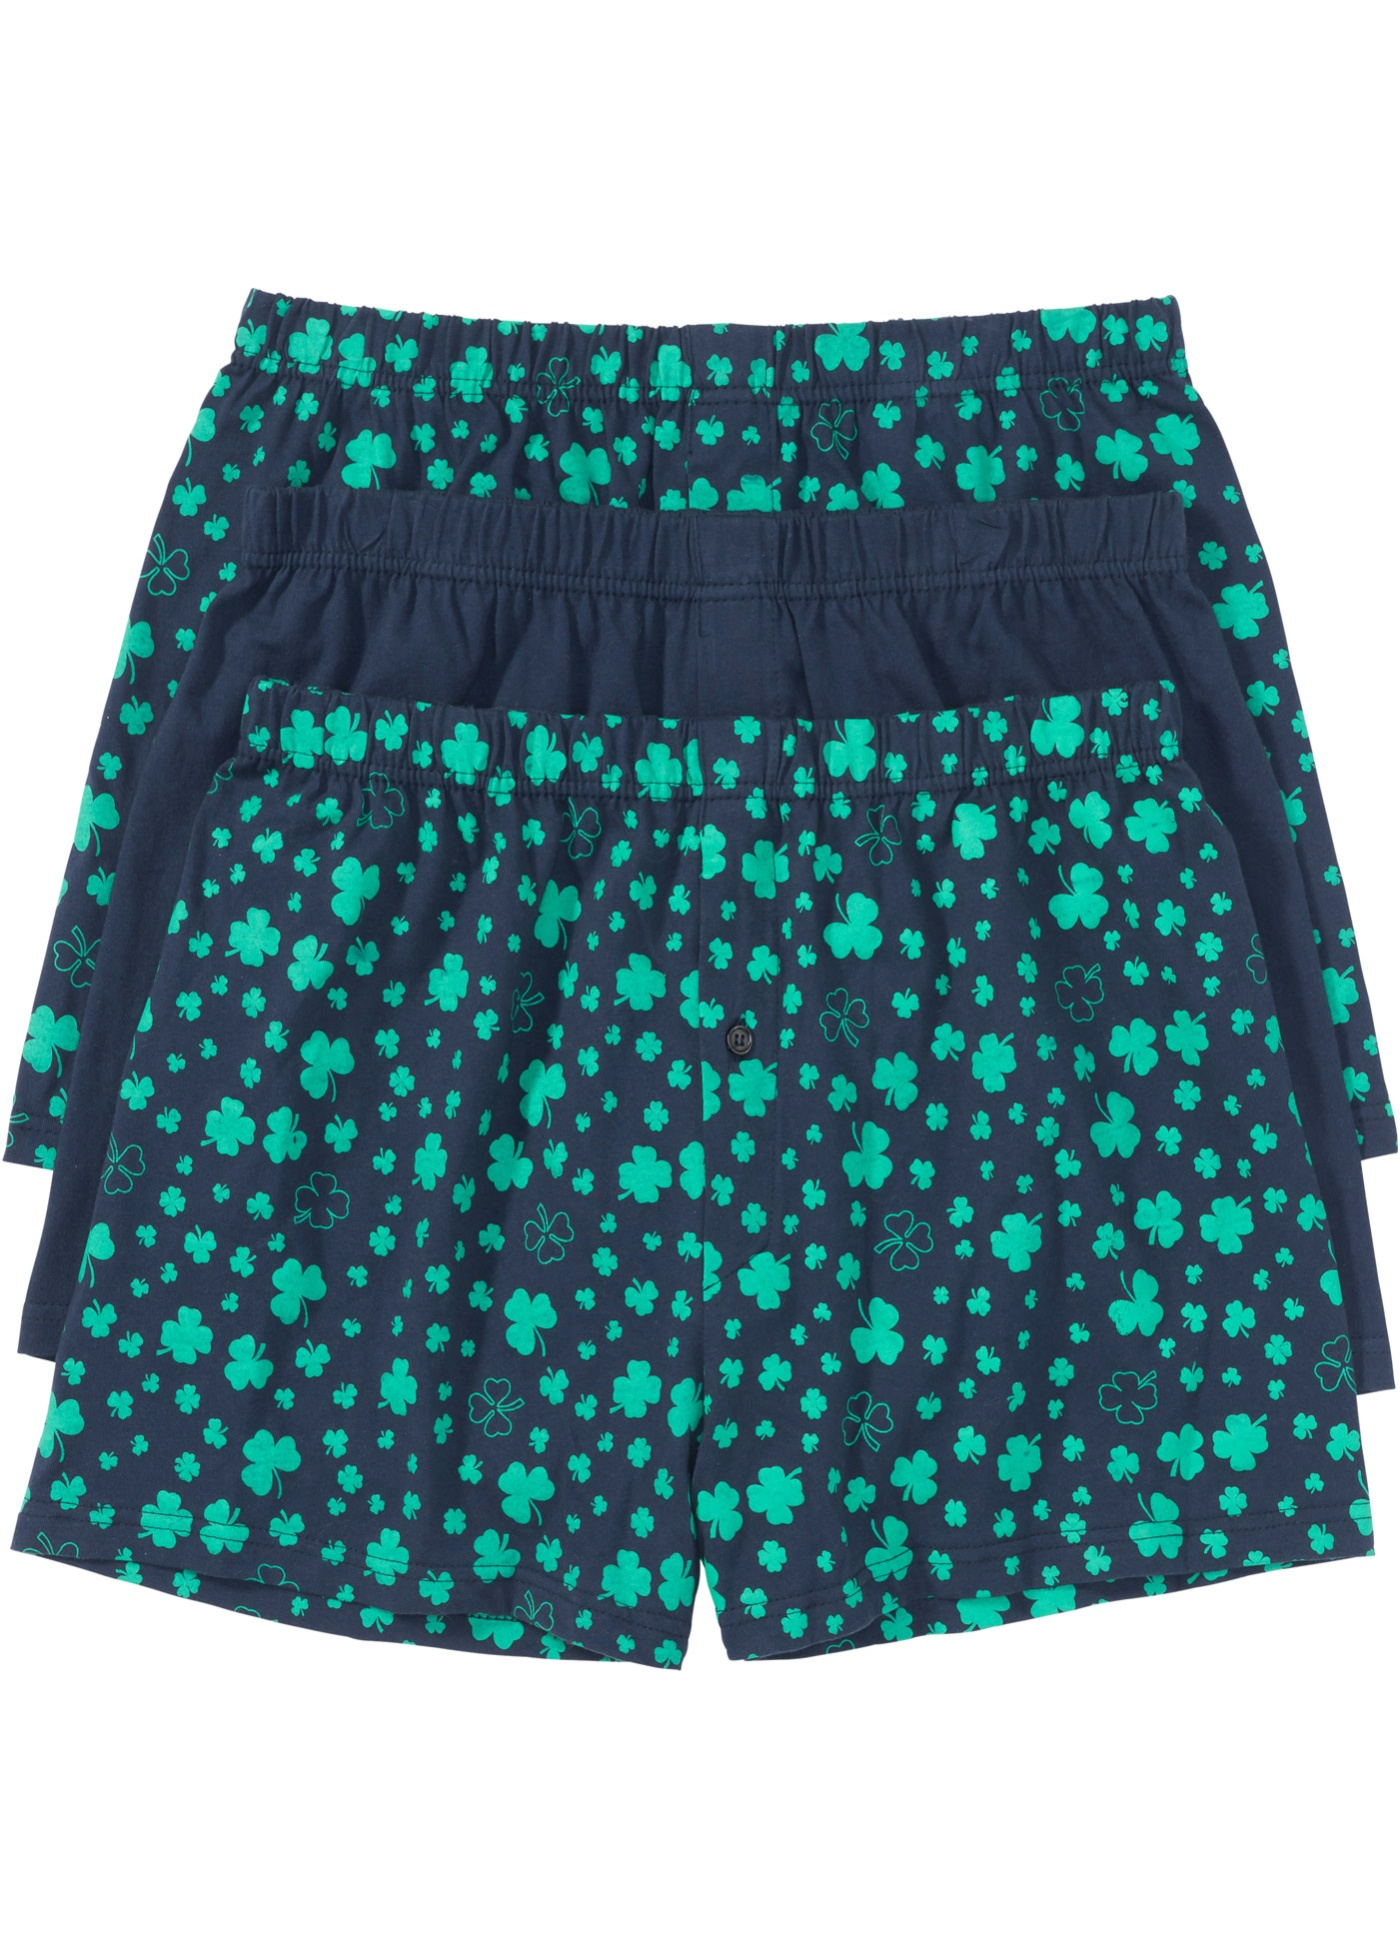 Boxer largo in jersey (pacco da 3) (Blu) - bpc bonprix collection